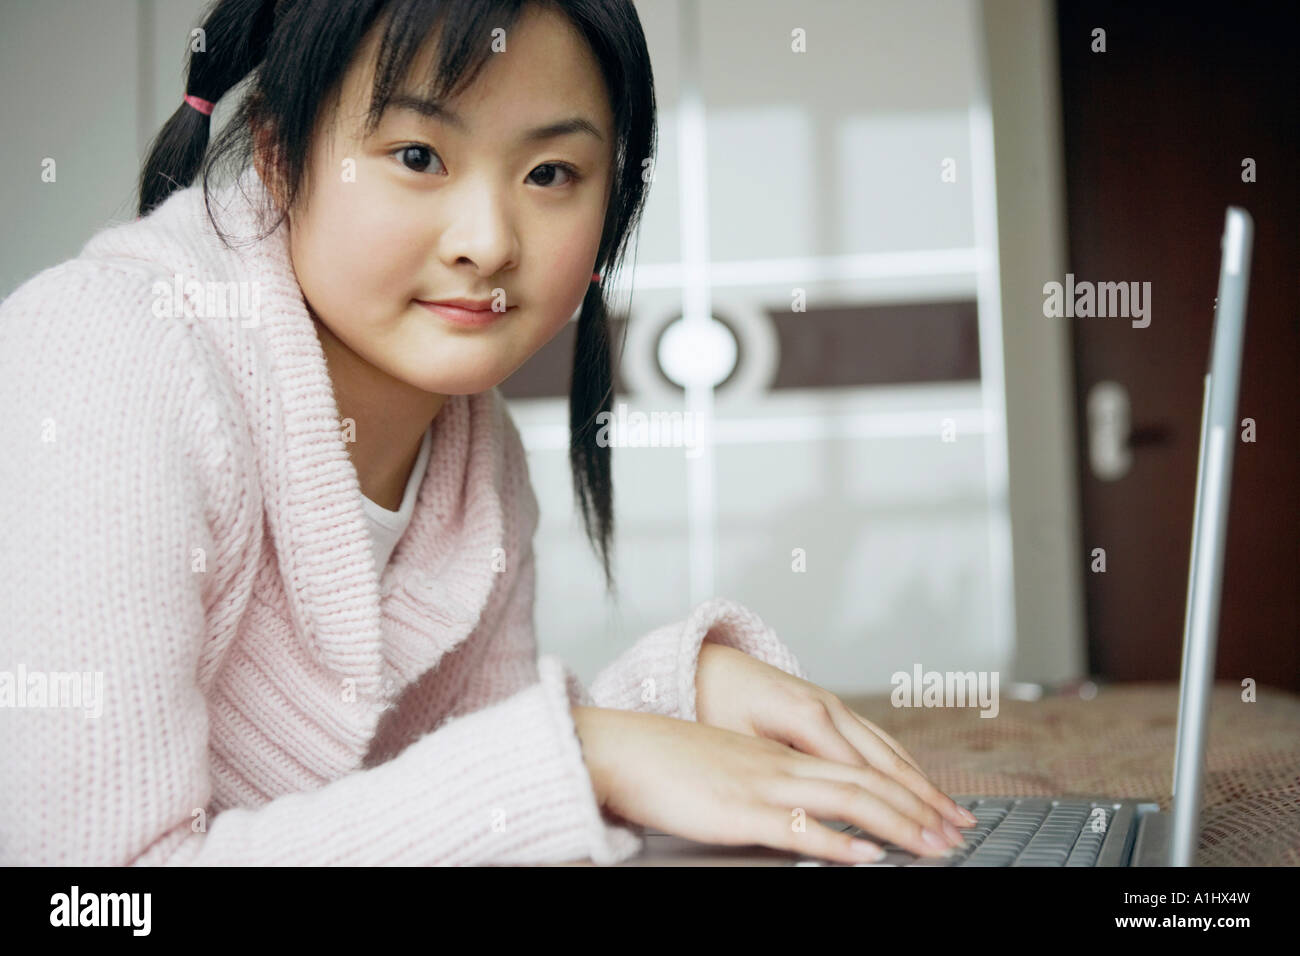 Portrait of a young woman using a laptop - Stock Image